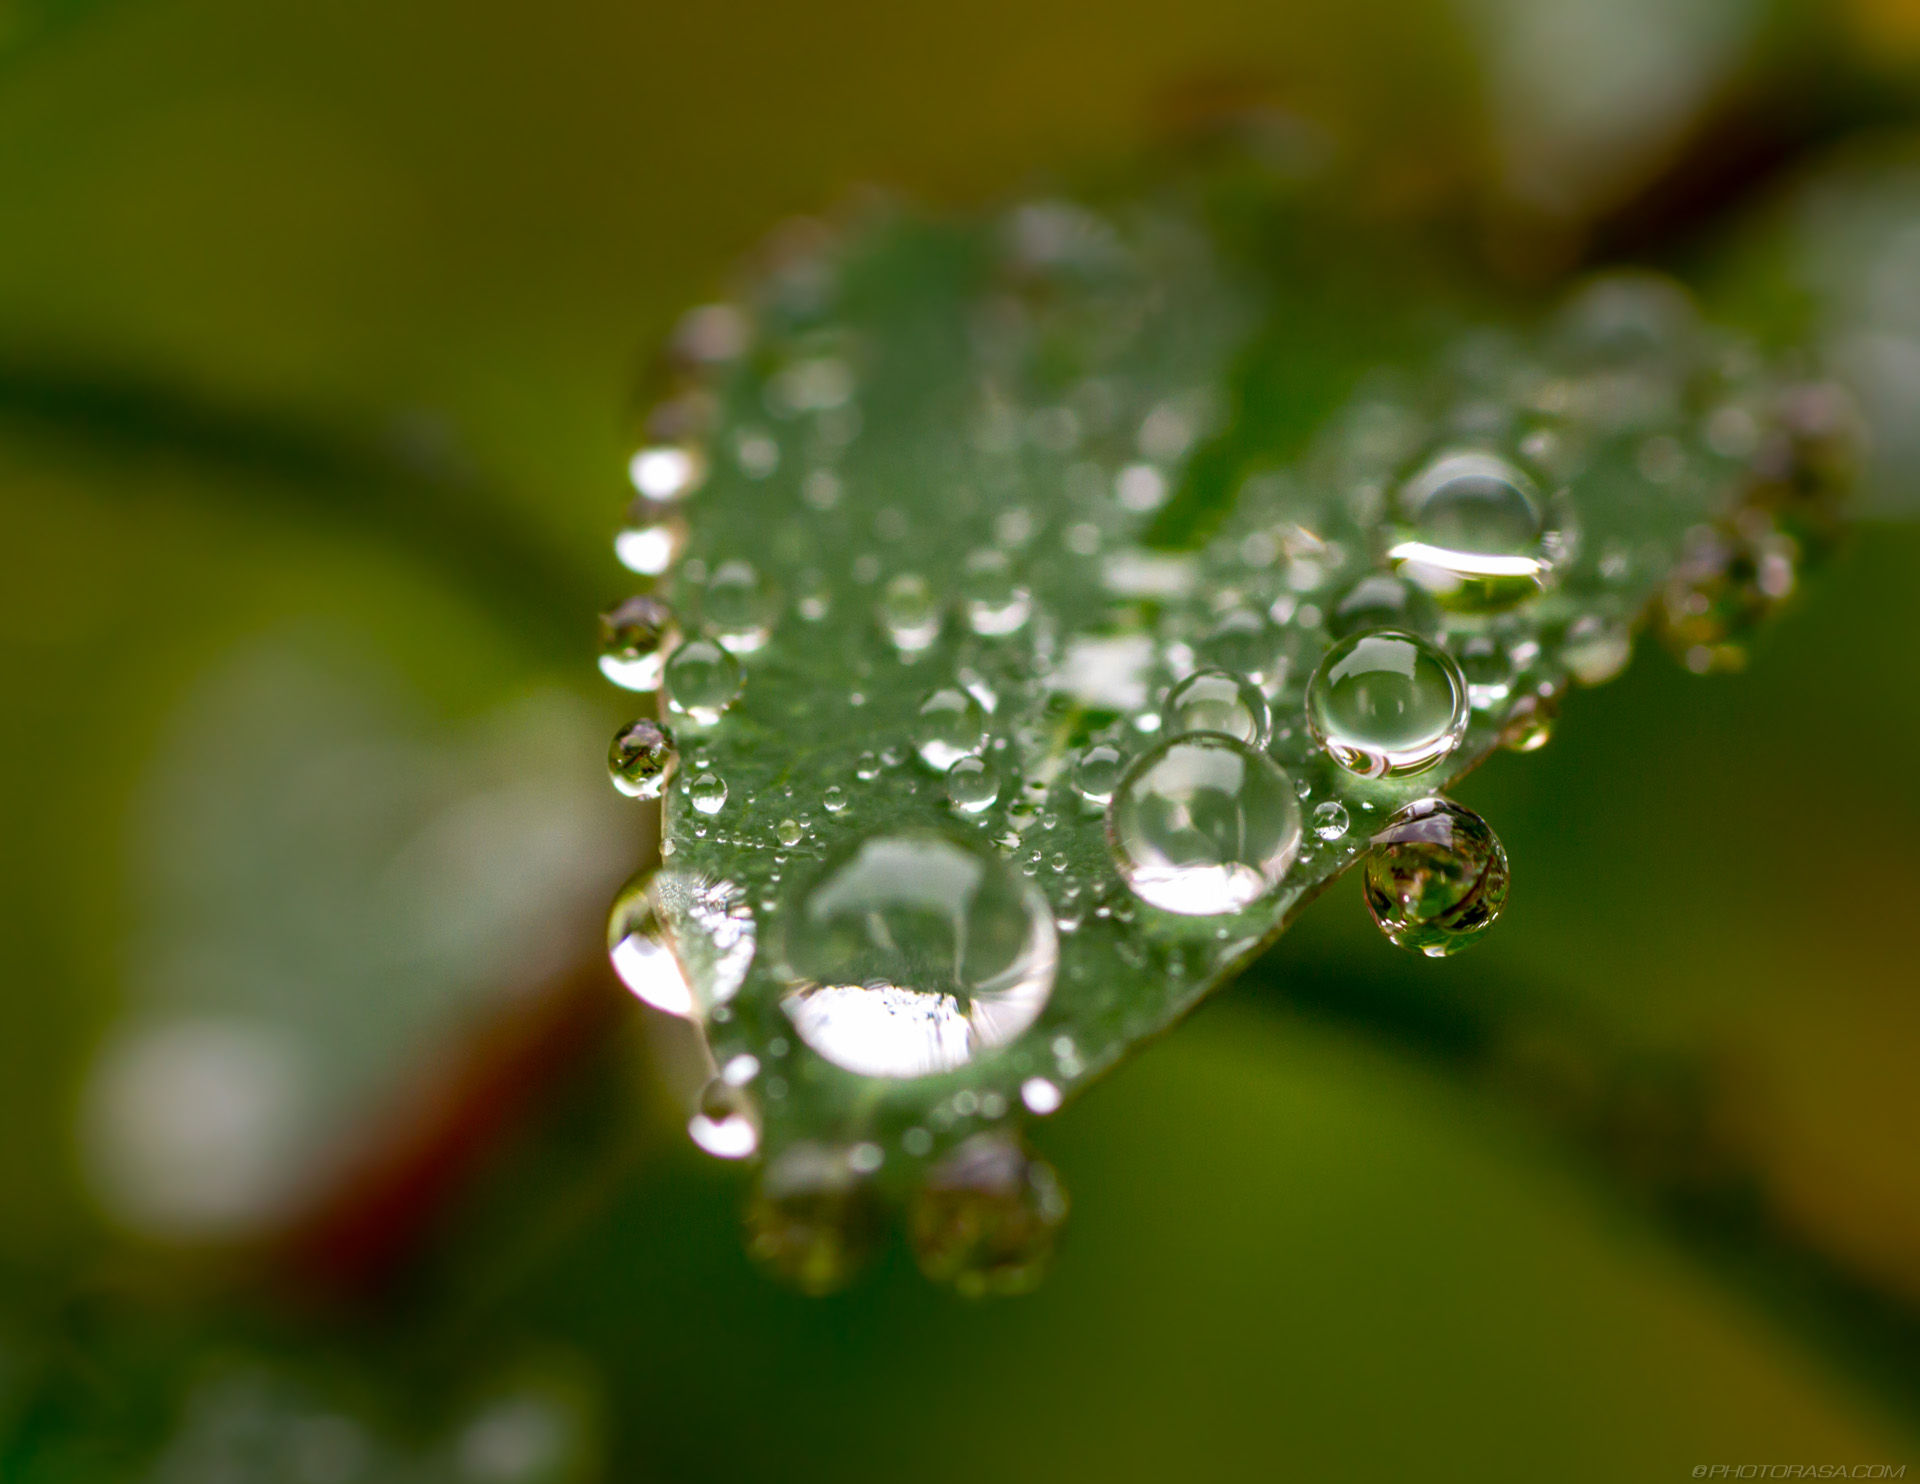 https://photorasa.com/dewdrops-tiny-leaves/dewdrops-on-edge-and-face-of-leaf/